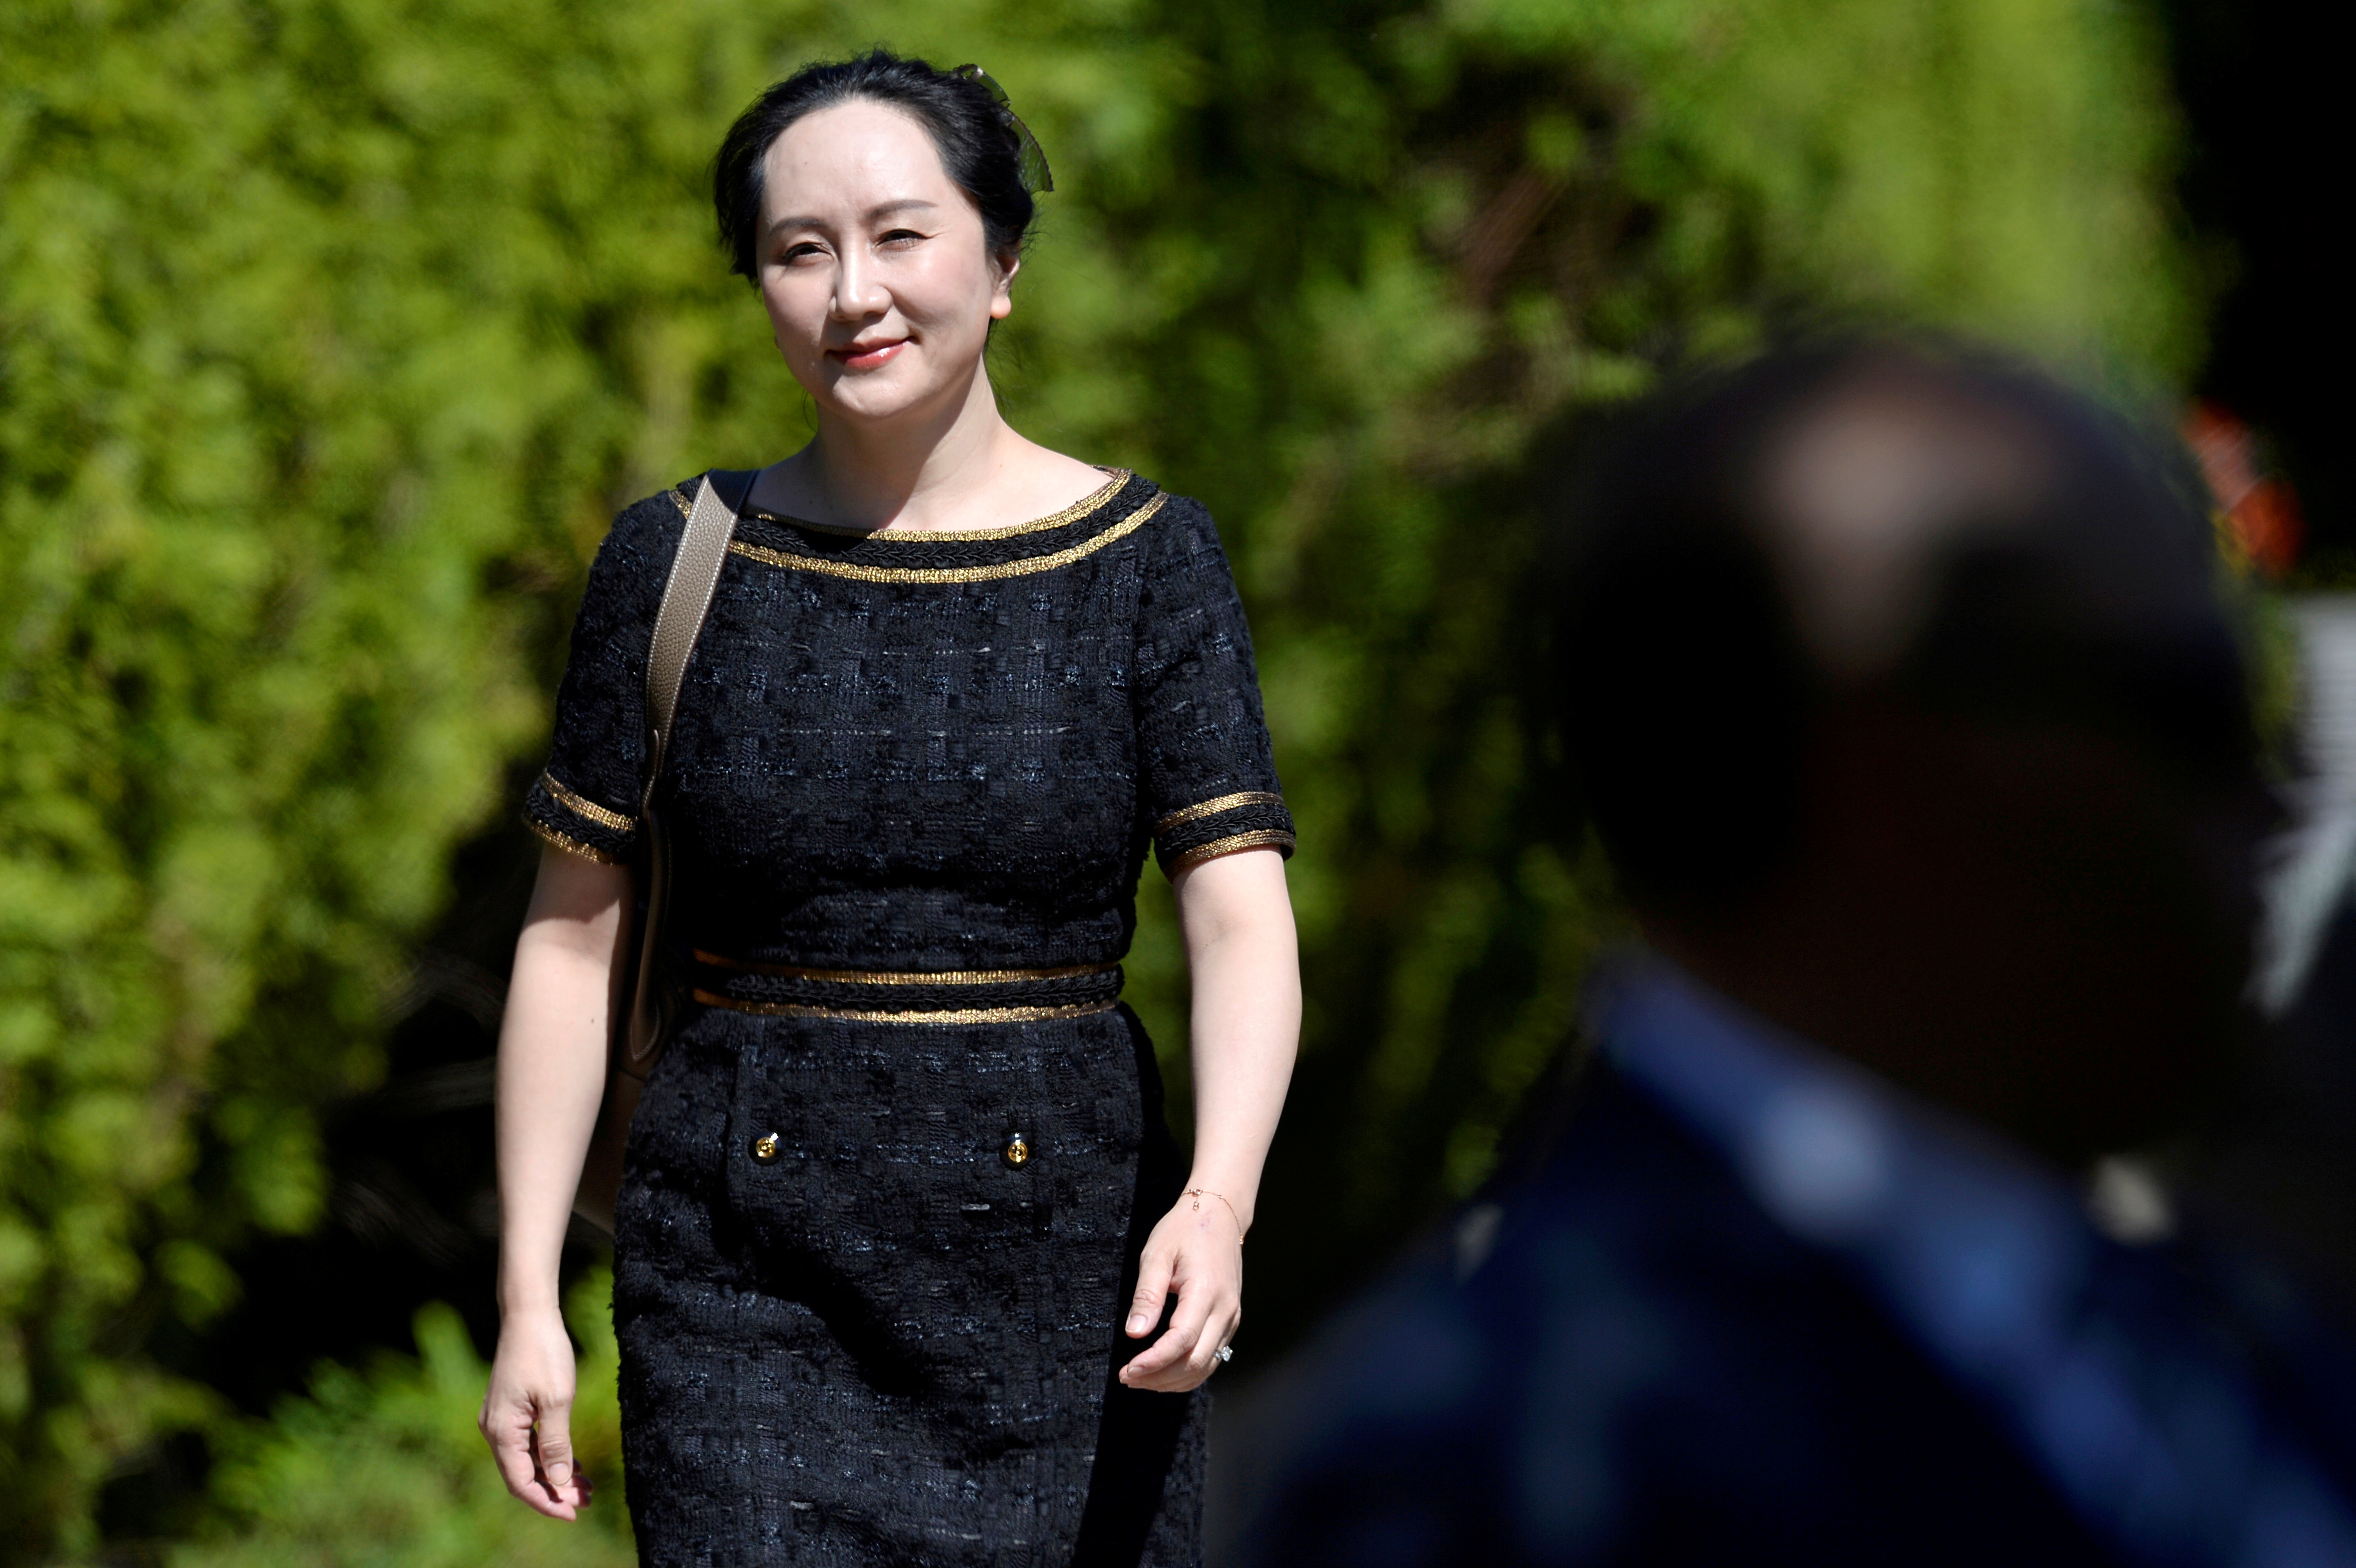 Huawei Technologies Chief Financial Officer Meng Wanzhou leaves her home to attend a court hearing in Vancouver, British Columbia, Canada May 27, 2020. REUTERS/Jennifer Gauthier